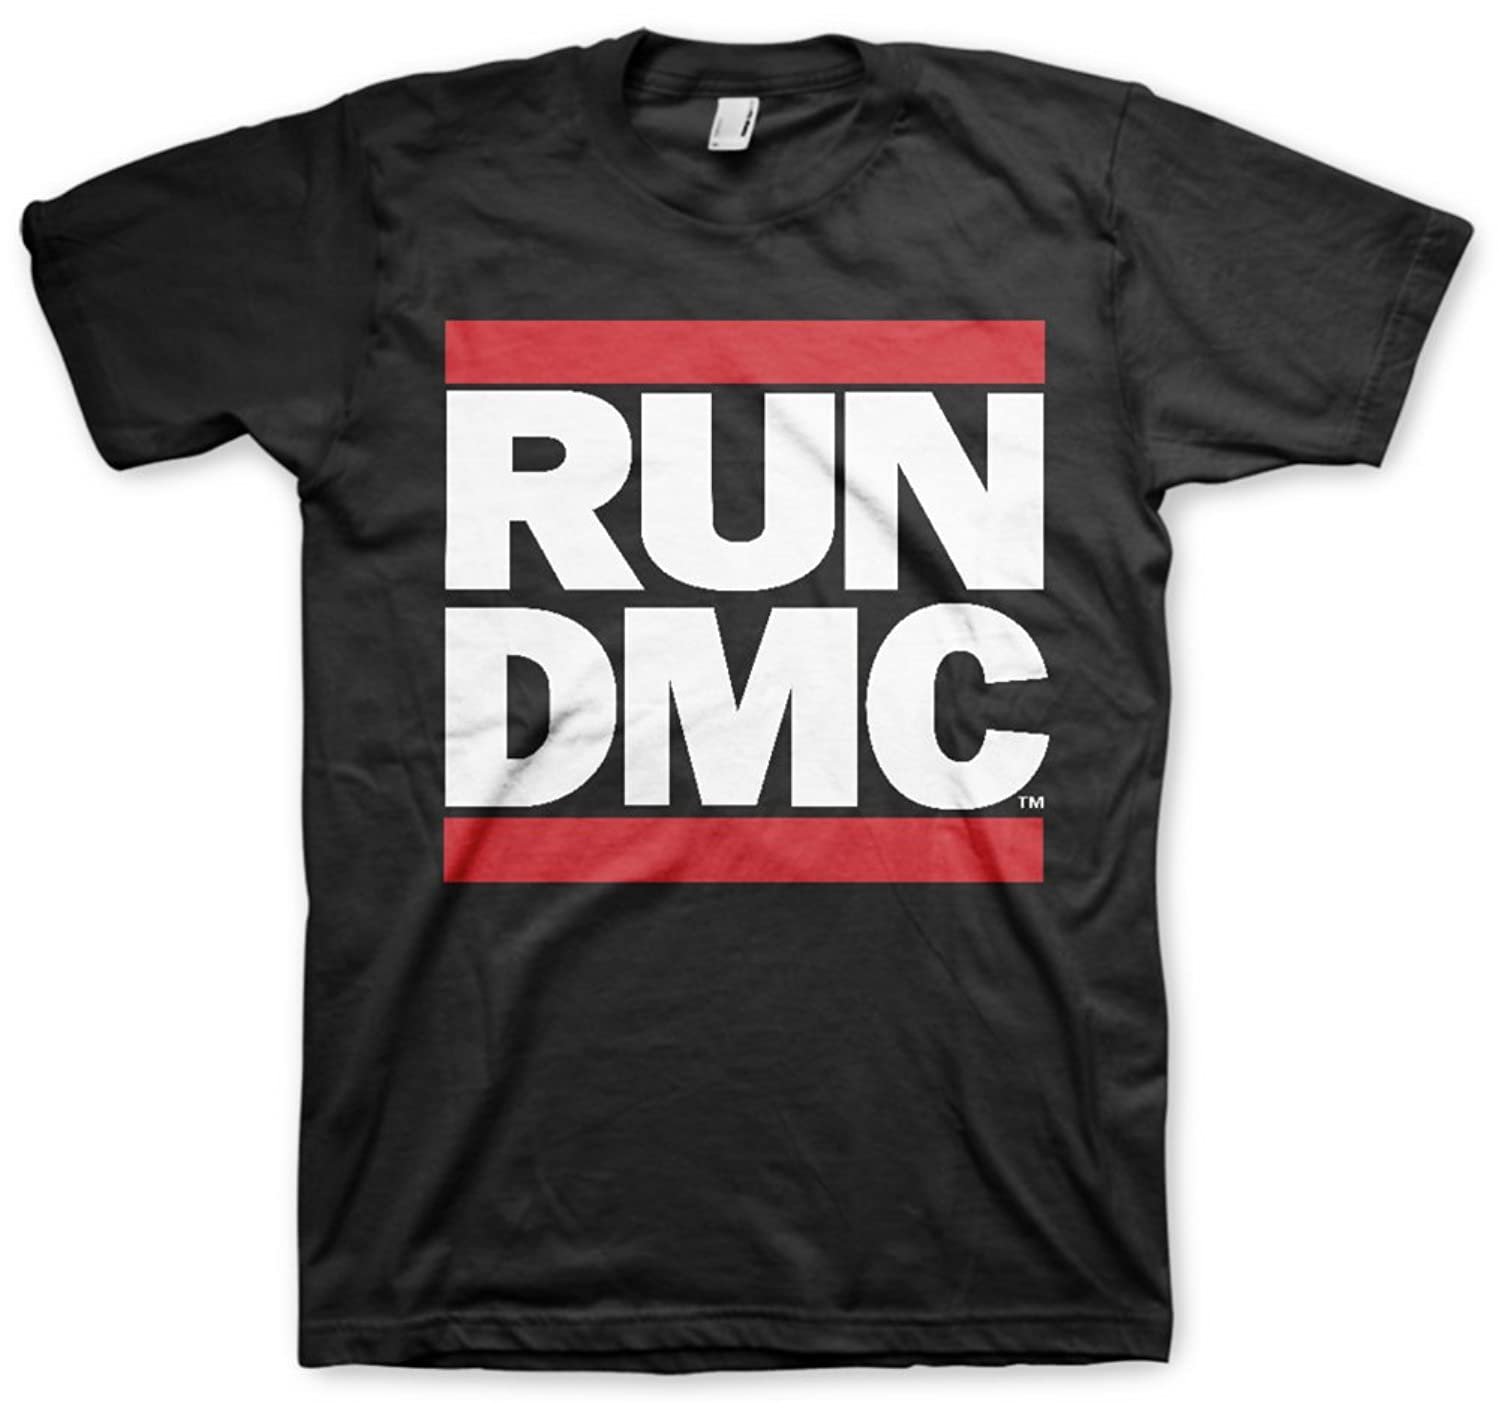 Run Dmc Logo Tee T Shirt T-Shirt Merchandise Merch Hip Hop Rap Herren Men